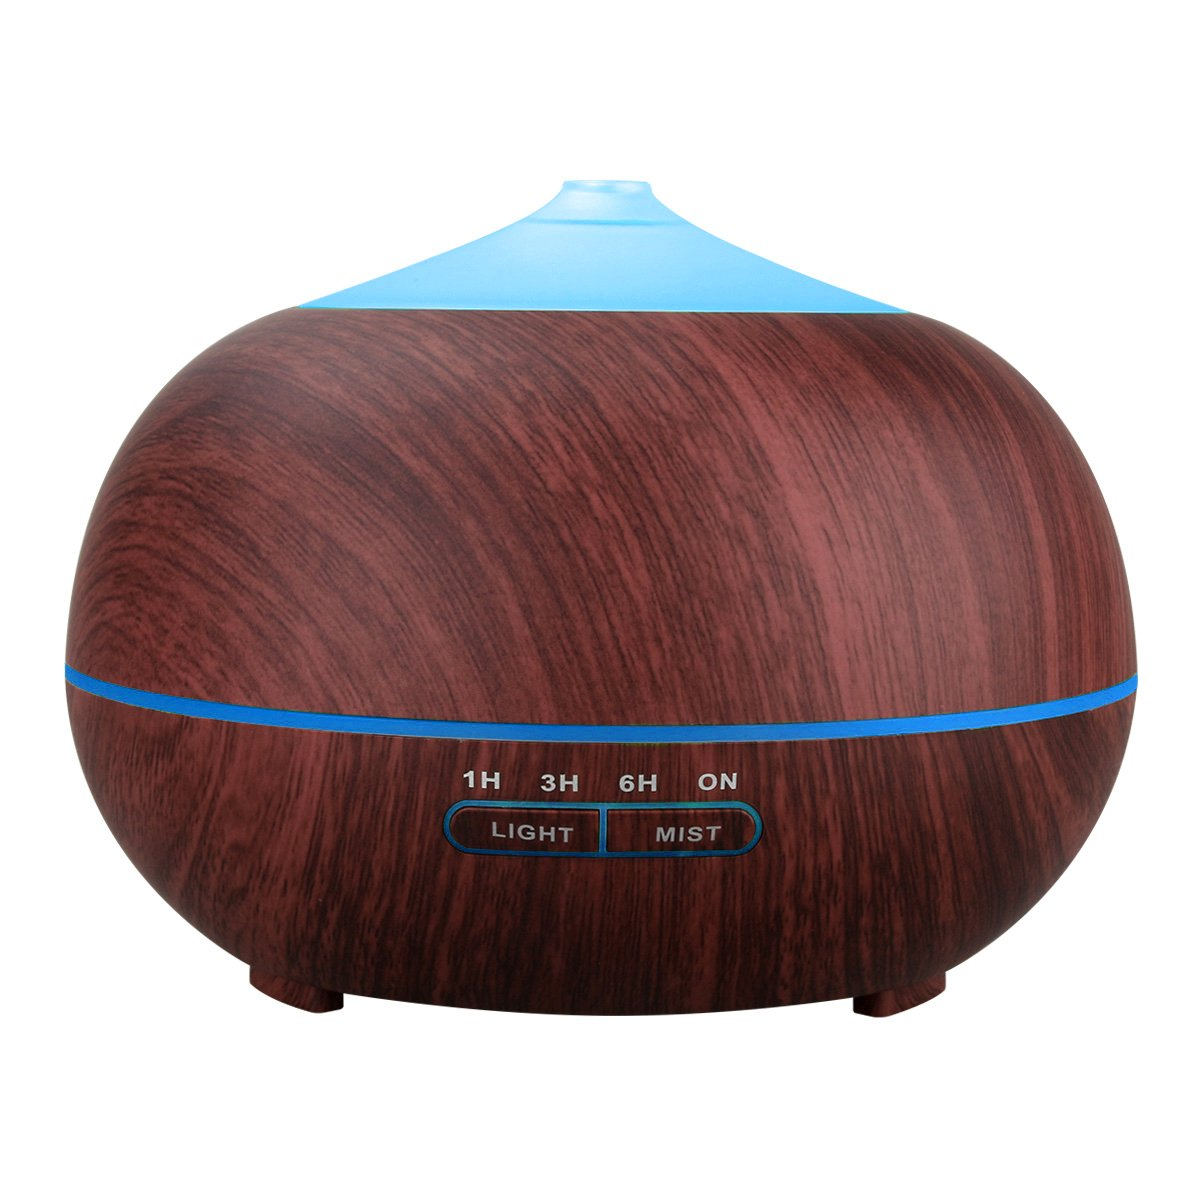 Tenswall Aromatherapy Essential Oil Diffuser, 400ml Ultrasonic Cool Mist Humidifier - Whisper Quiet Operation -7 Changing LED Lights & Auto Shut-Off - 4 Timer Settings - Dark Brown Wood Grain Color